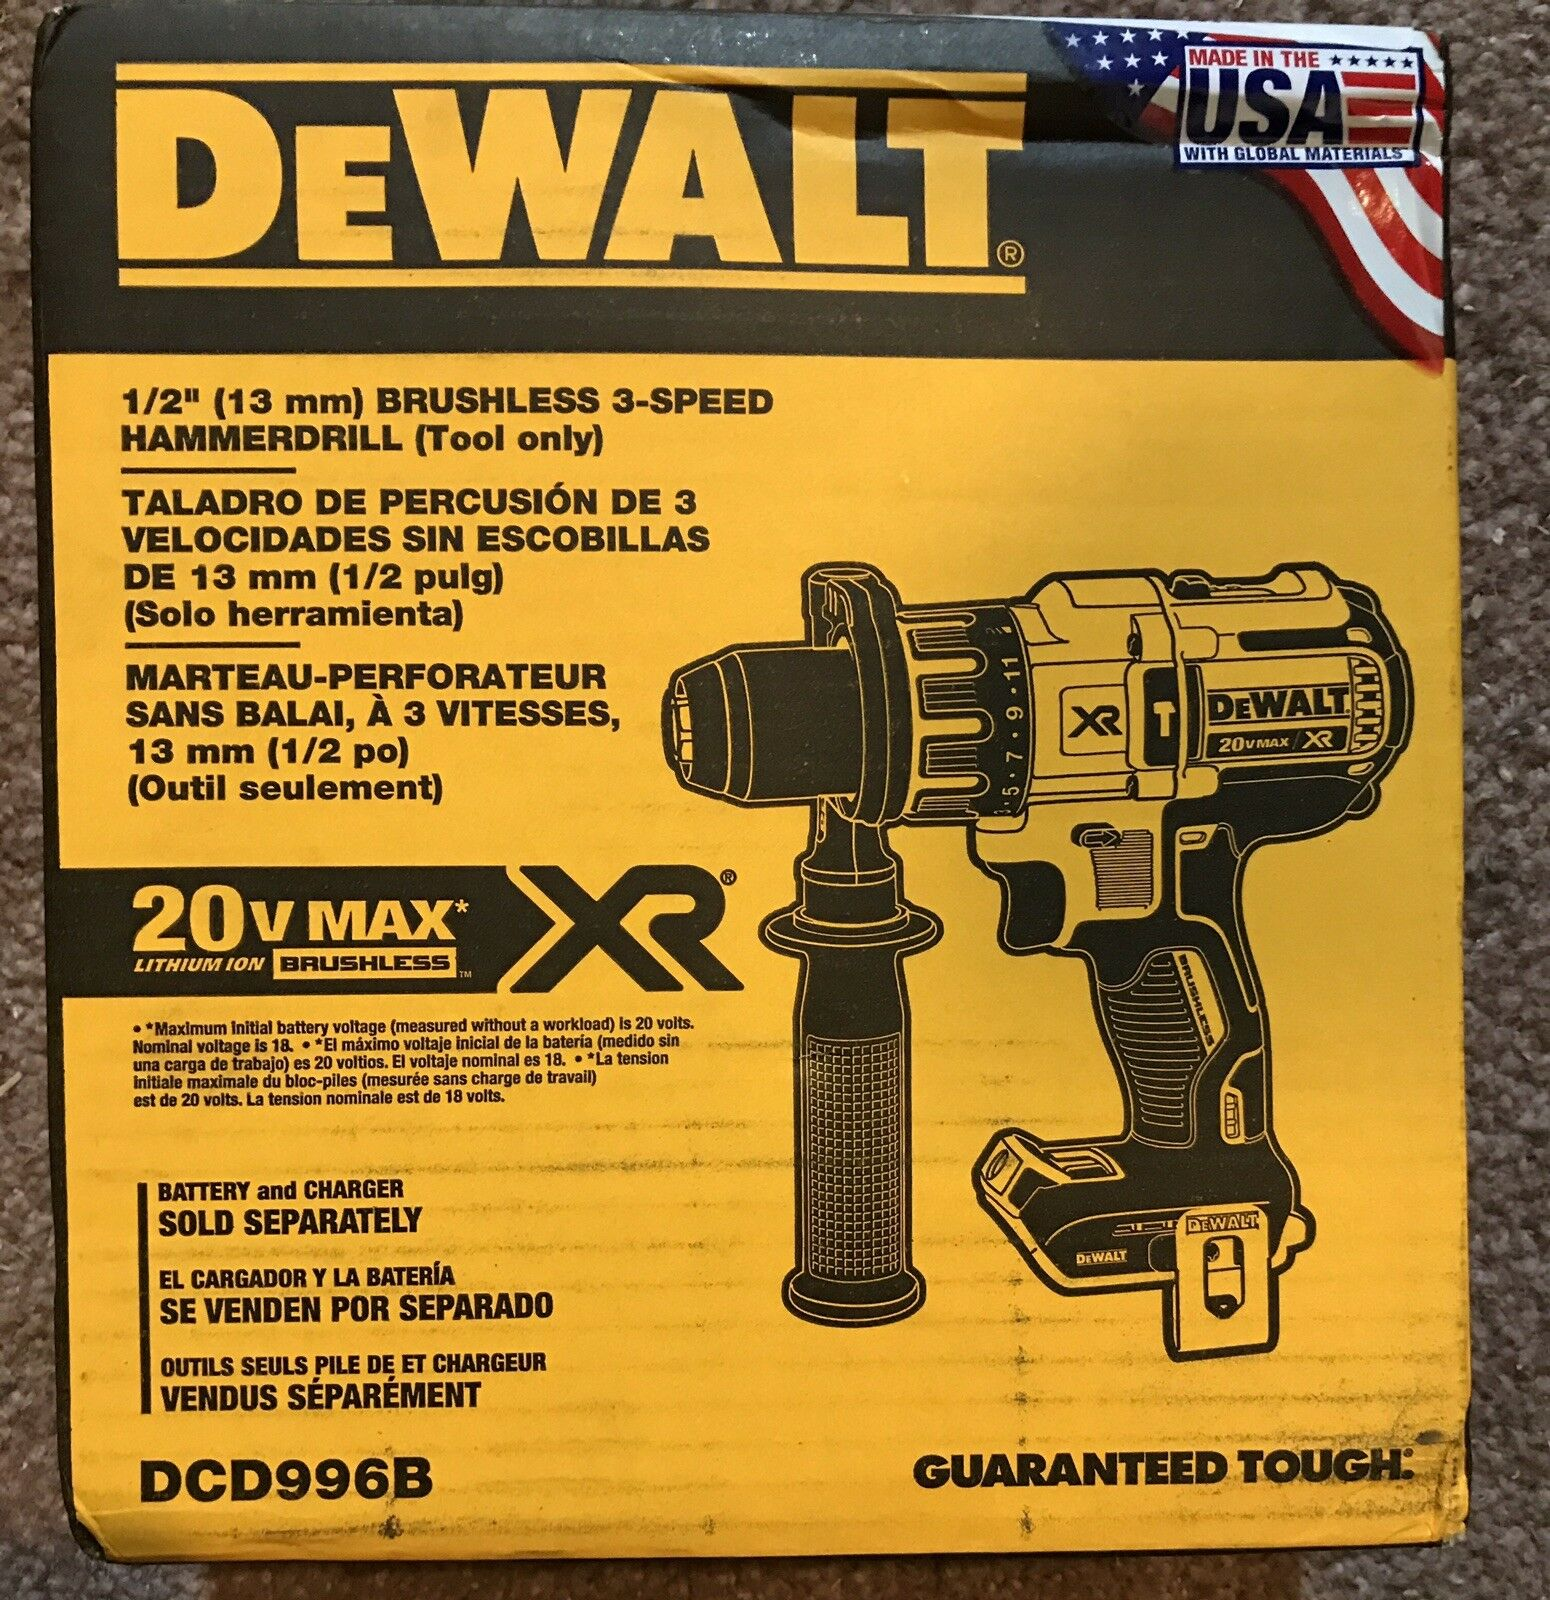 DEWALT DCD996B 20V 20 Volt Lithium Ion  Brushless 1/2